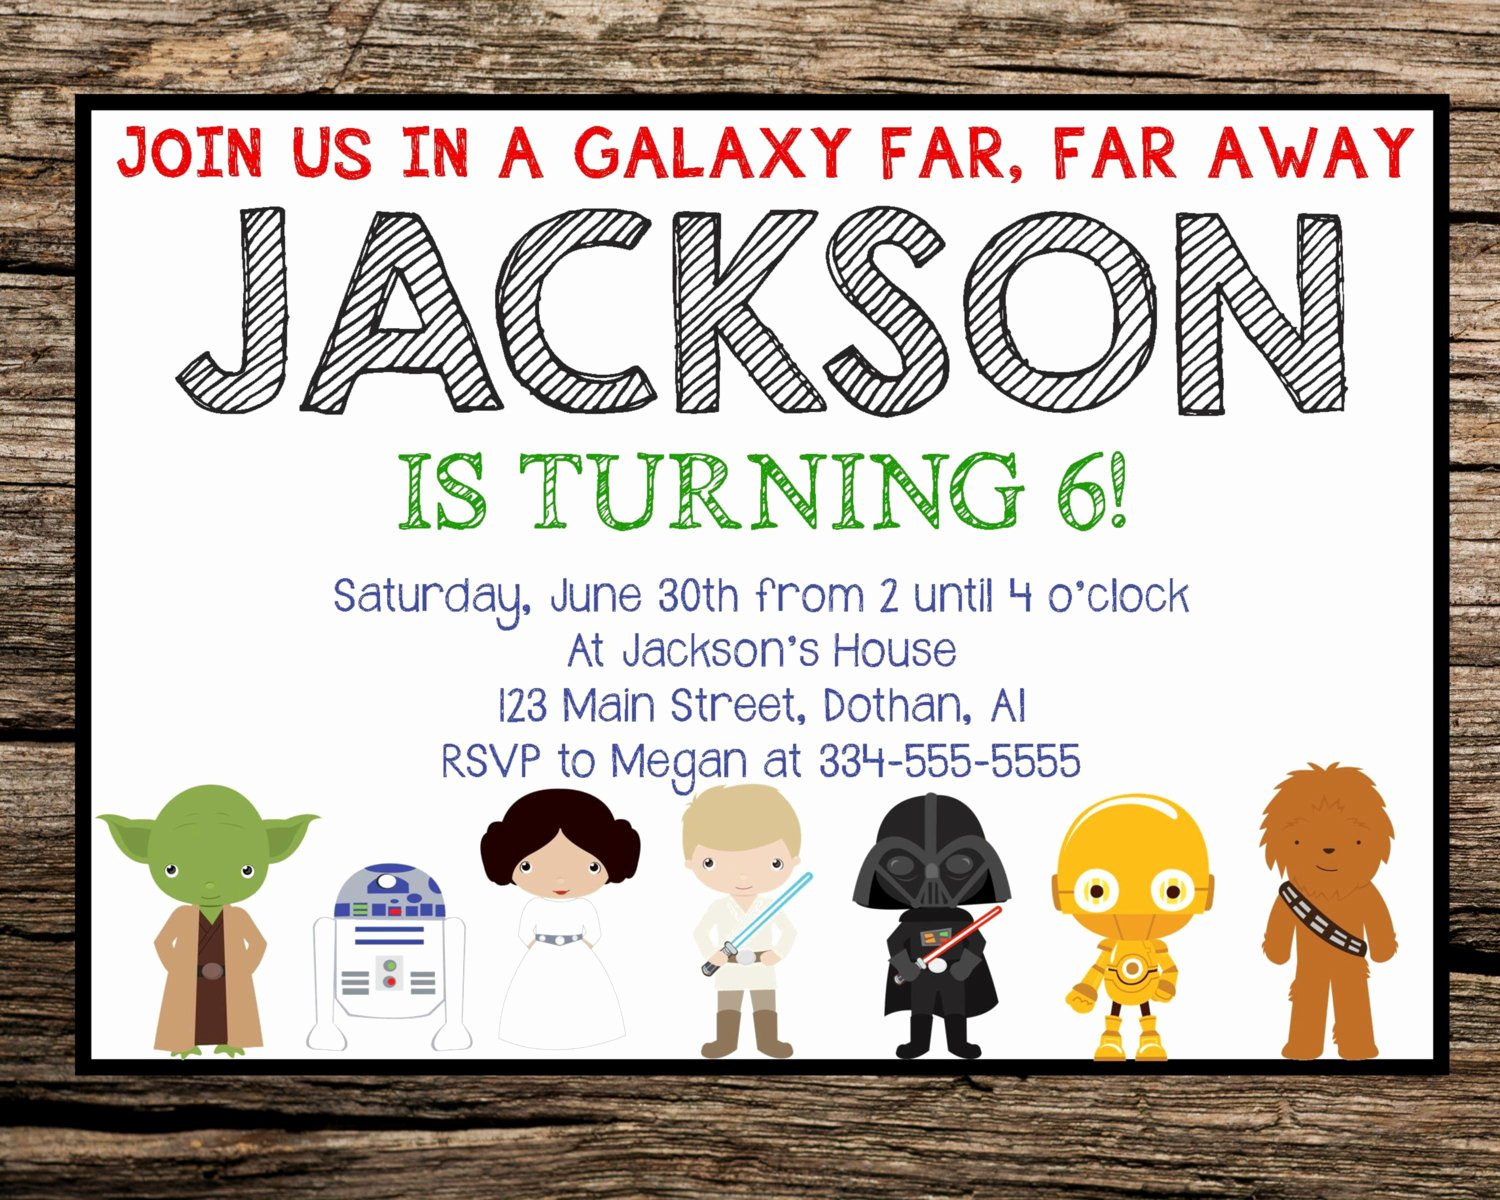 Star Wars Birthday Invitation Lovely Star Wars Invitation Star Wars Birthday Invitation by Mkellydesign